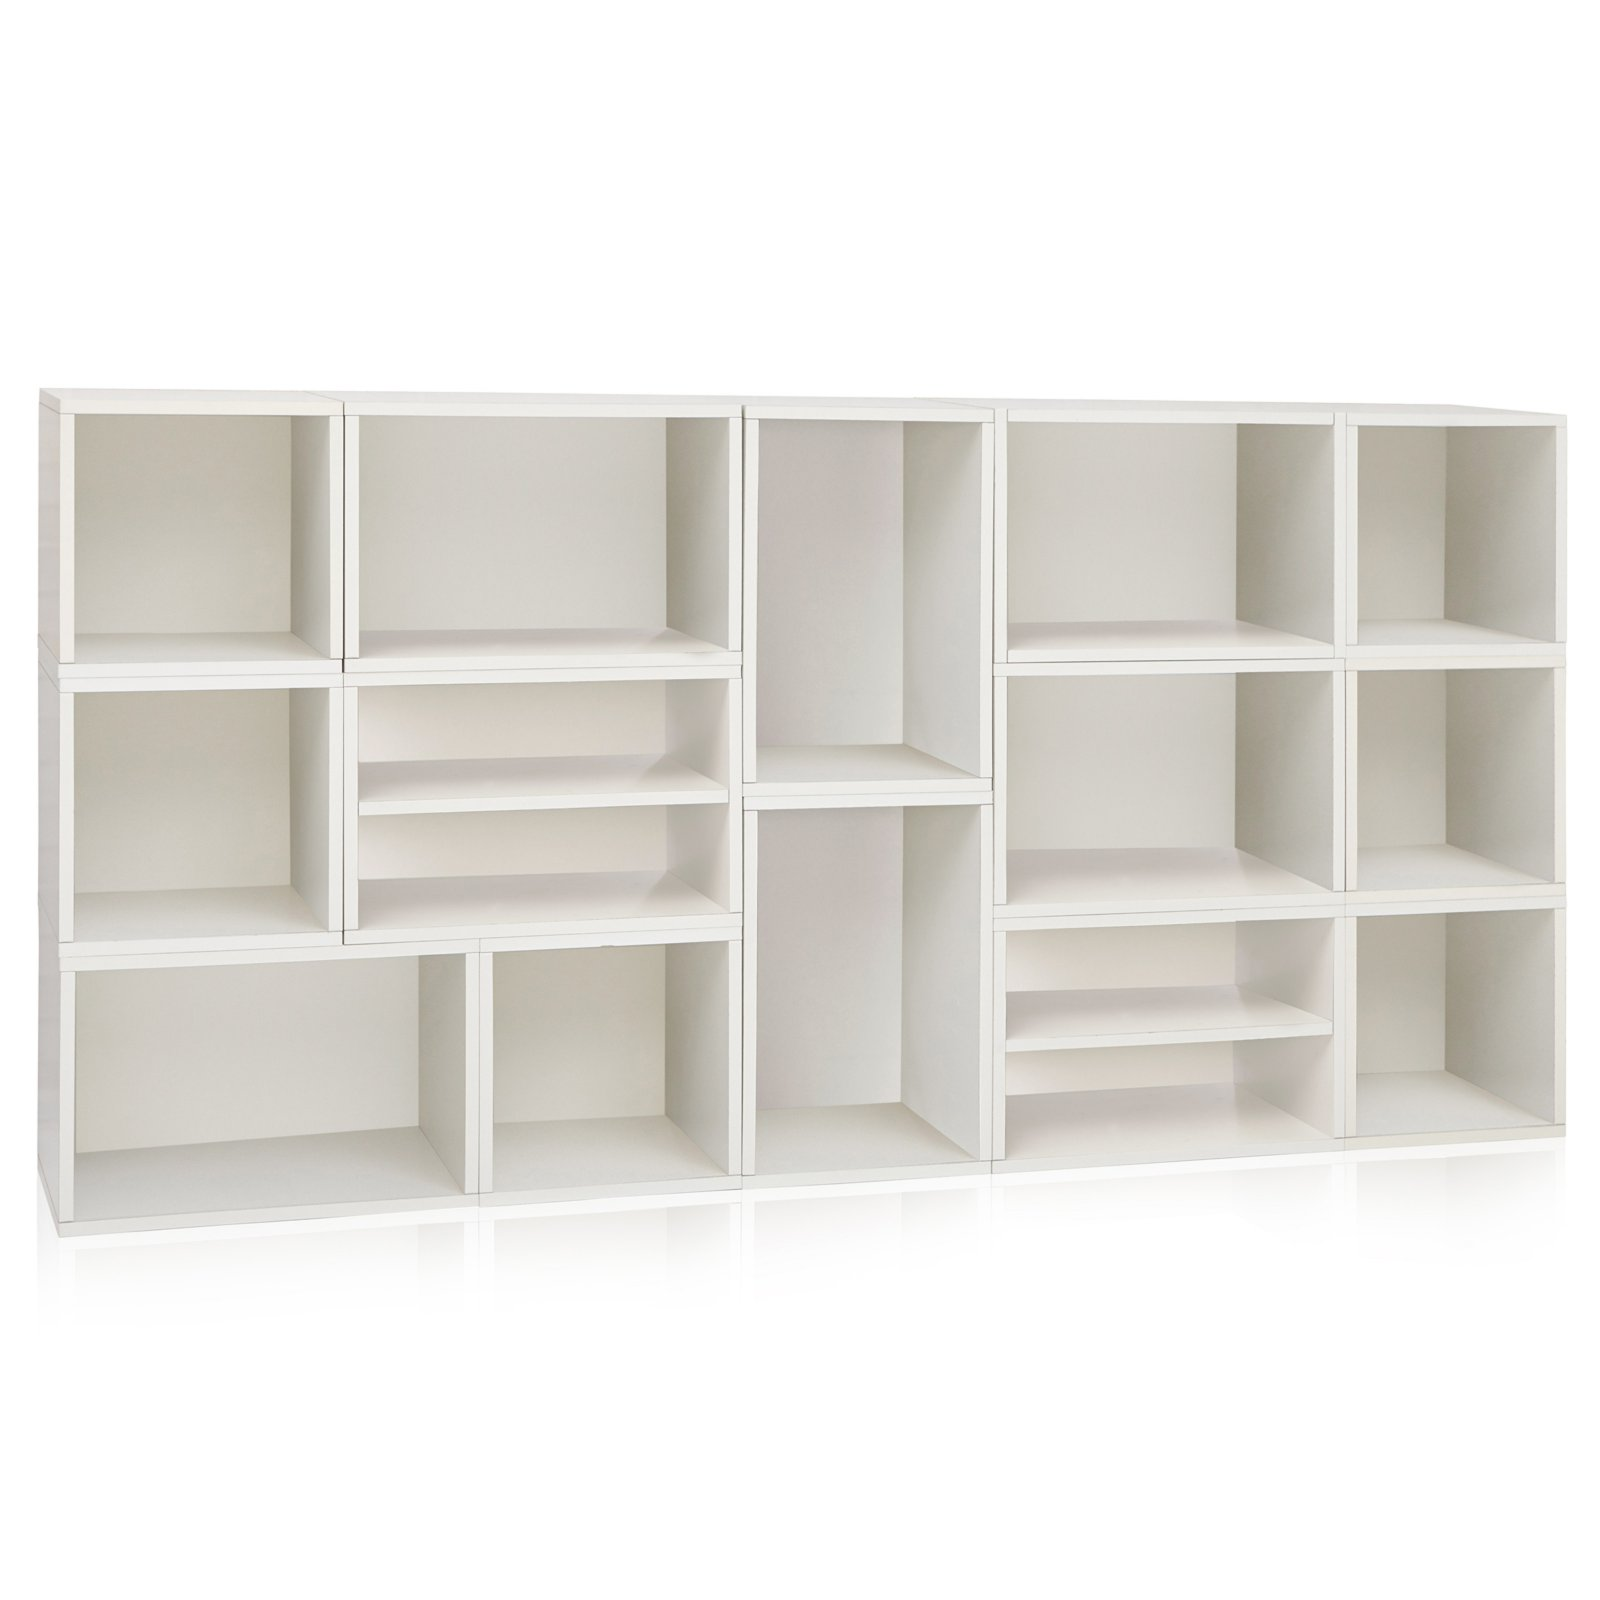 Way basics eco rome stackable modular bookcase and storage shelf